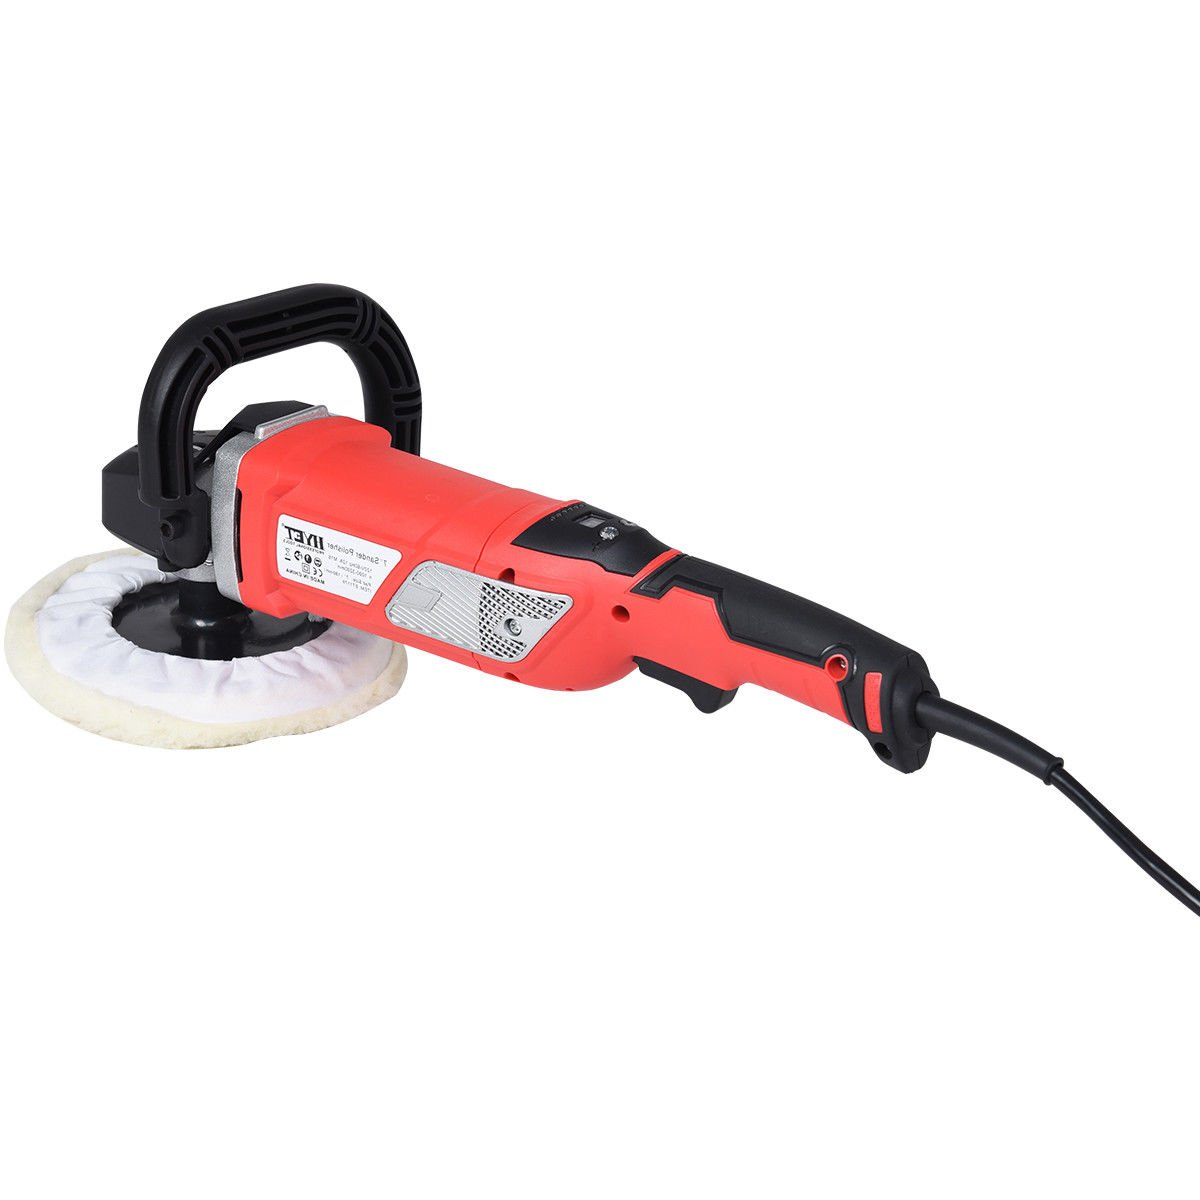 Globe House Products GHP 7'' Pad Size 1200W 0-4000RPM Variable Speed Electric Car Polisher with Case by Globe House Products (Image #3)